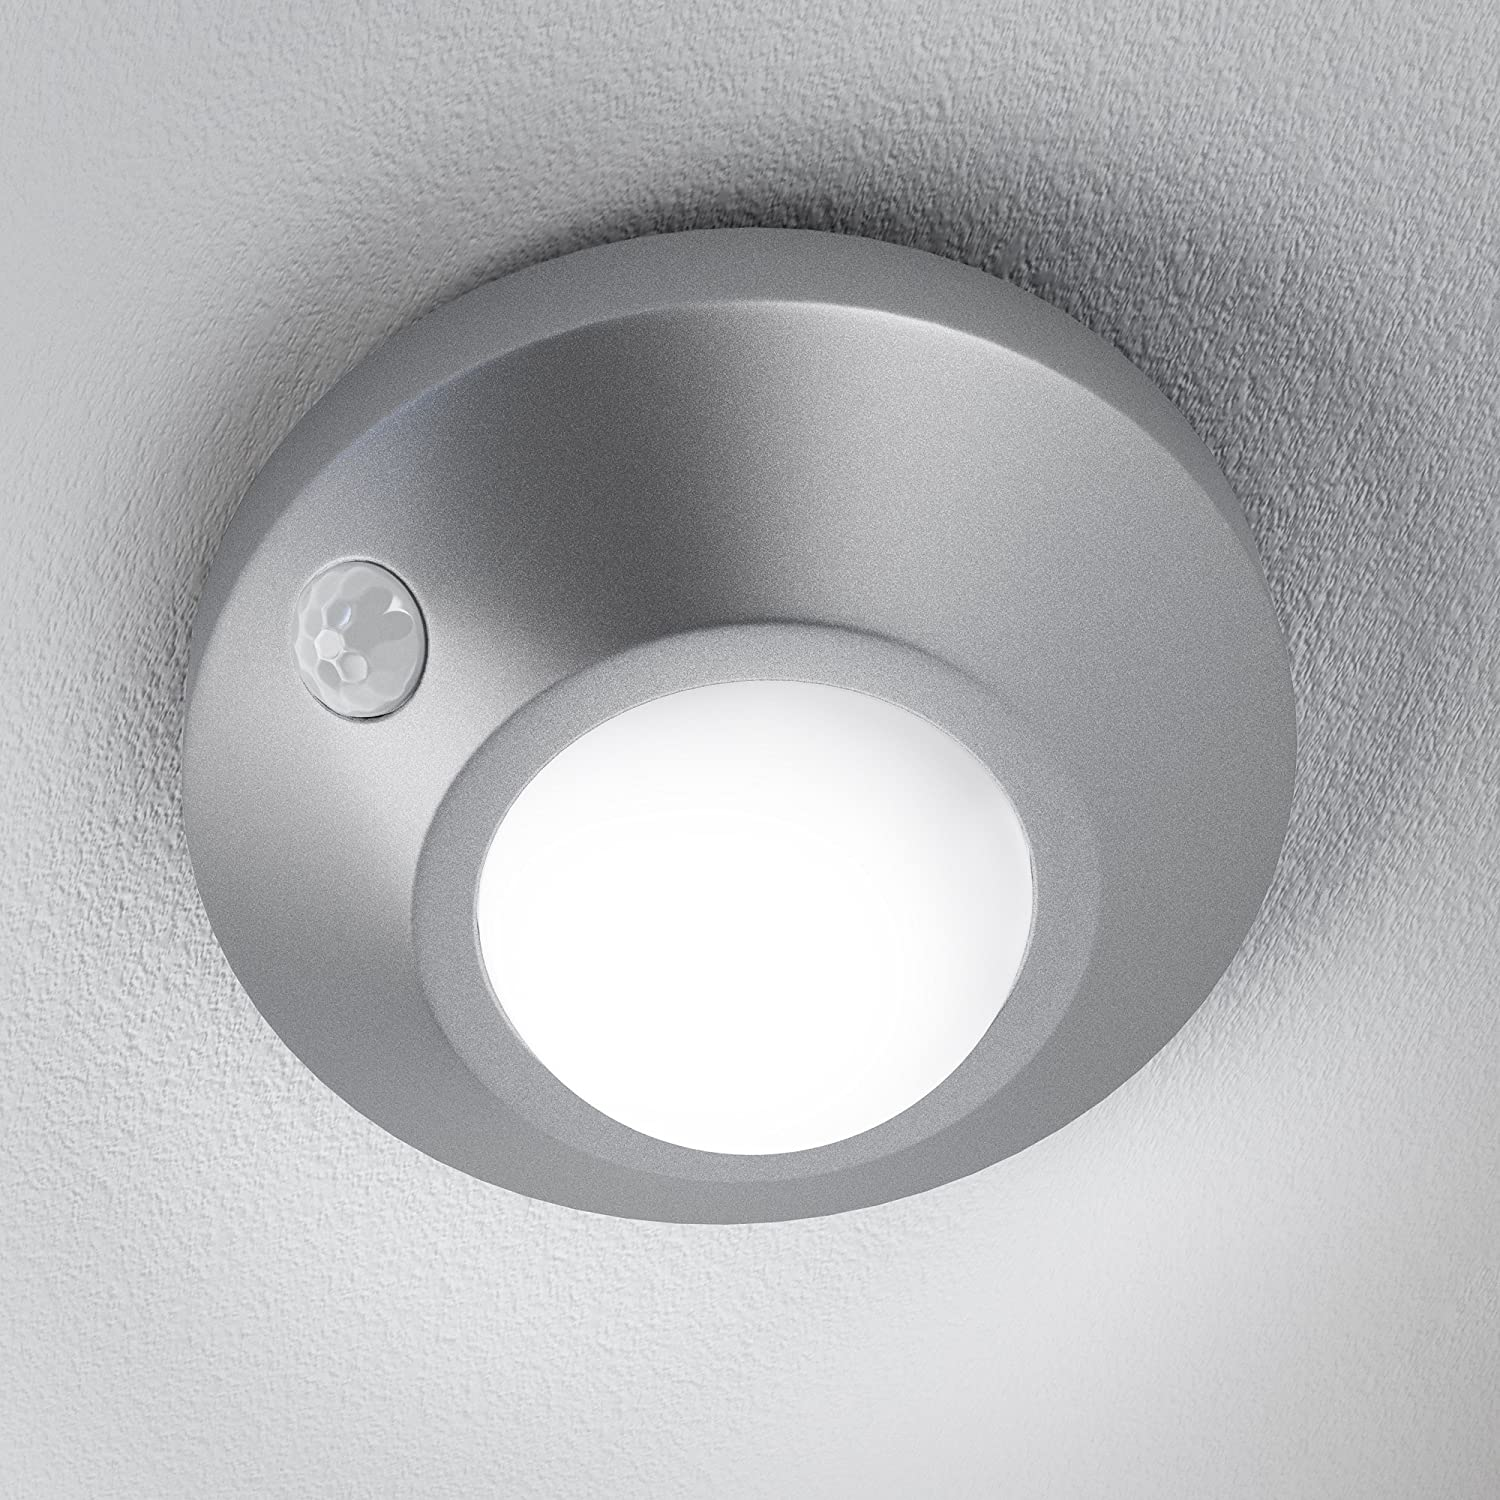 Bianco Osram Nightlux Ceiling 1.7 W 8.6 x 8.6 x 4,7 cm